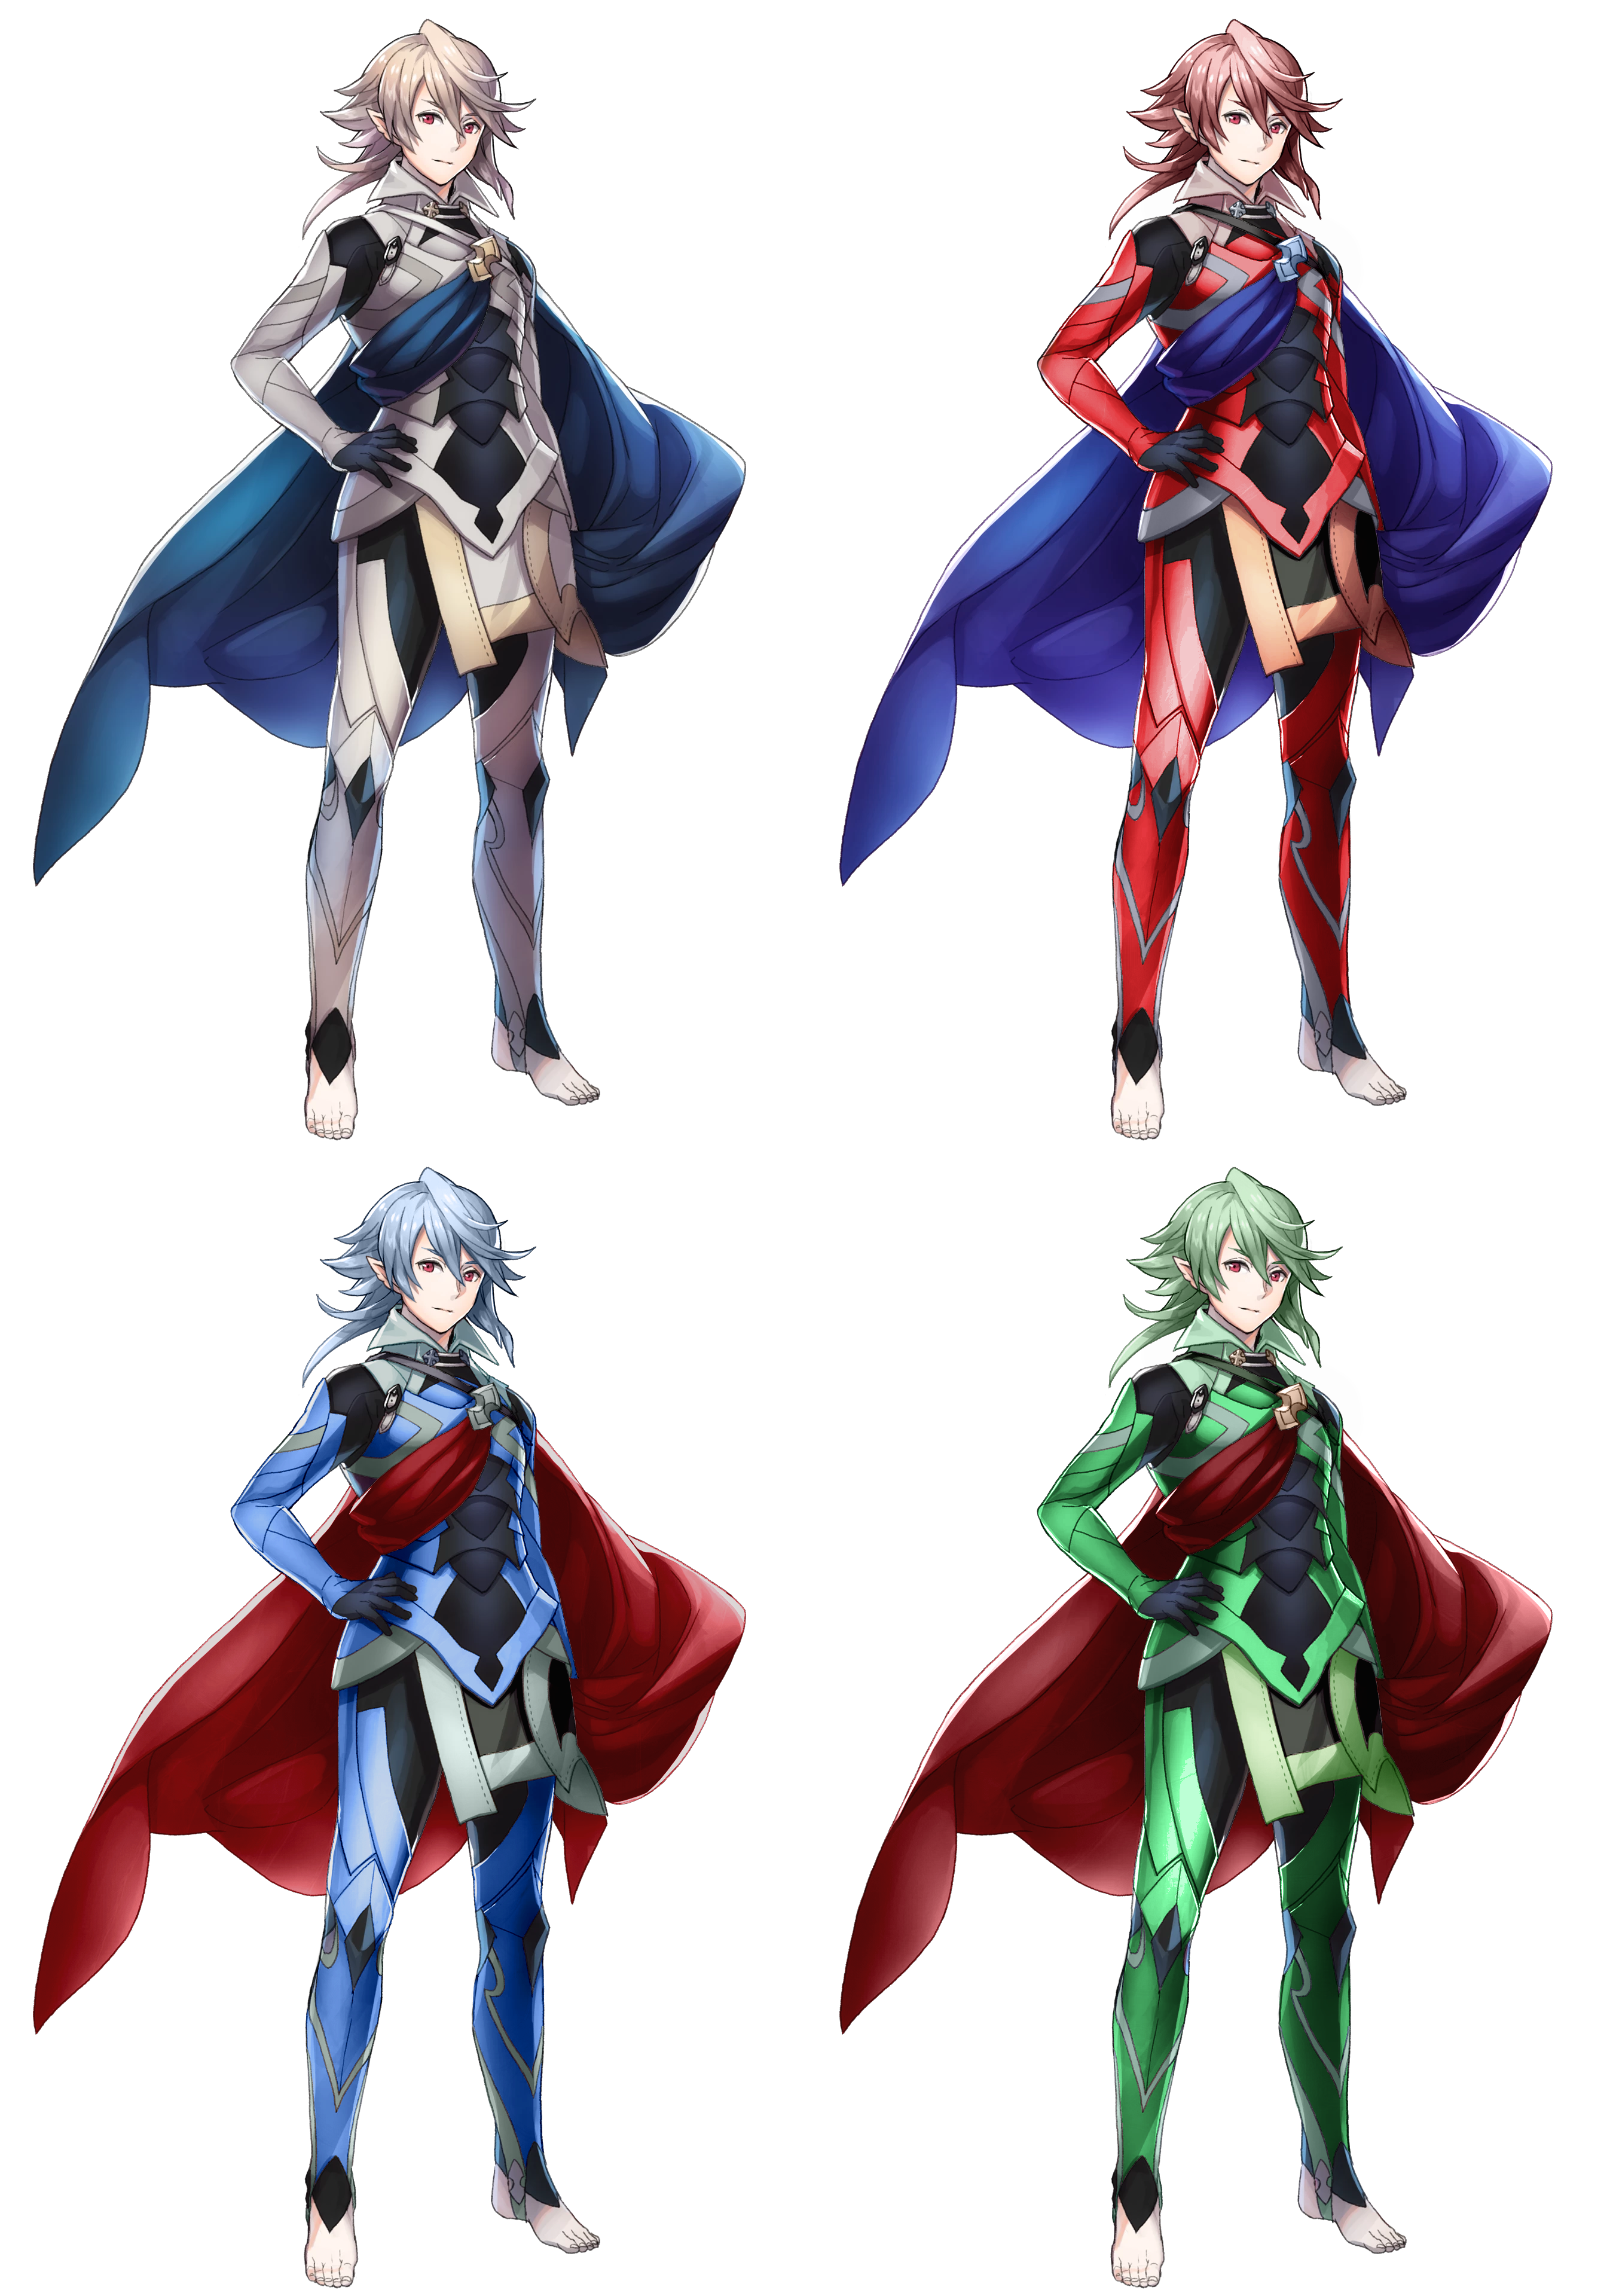 Smash 4 costumes png. I recolored corrin m